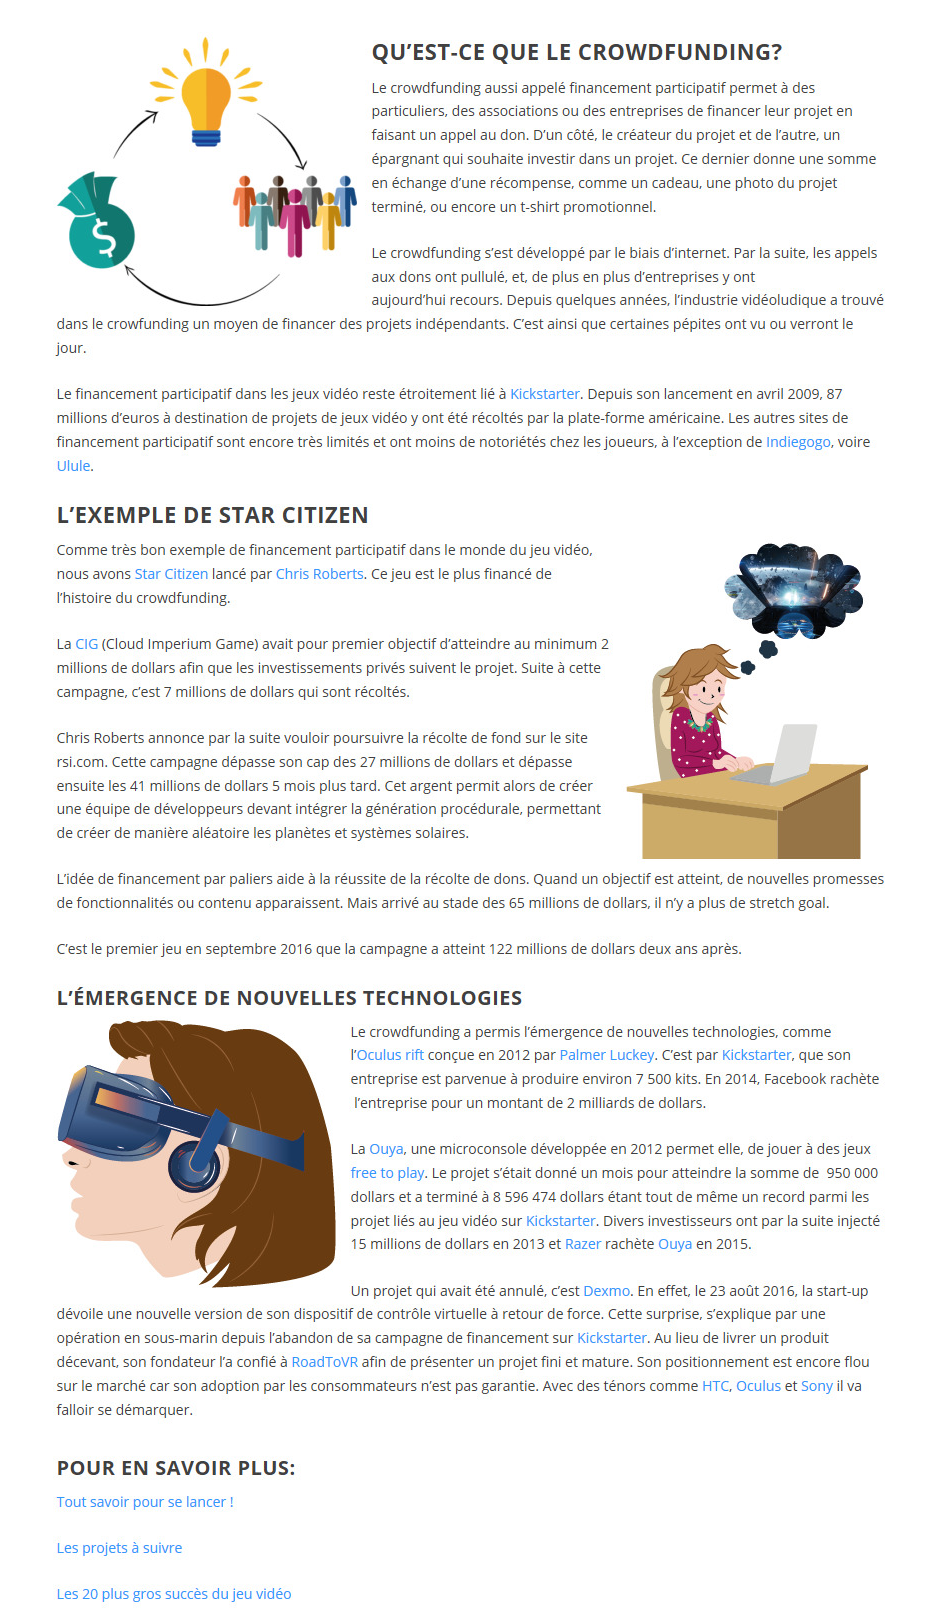 crowdfunding-et-jeu-video